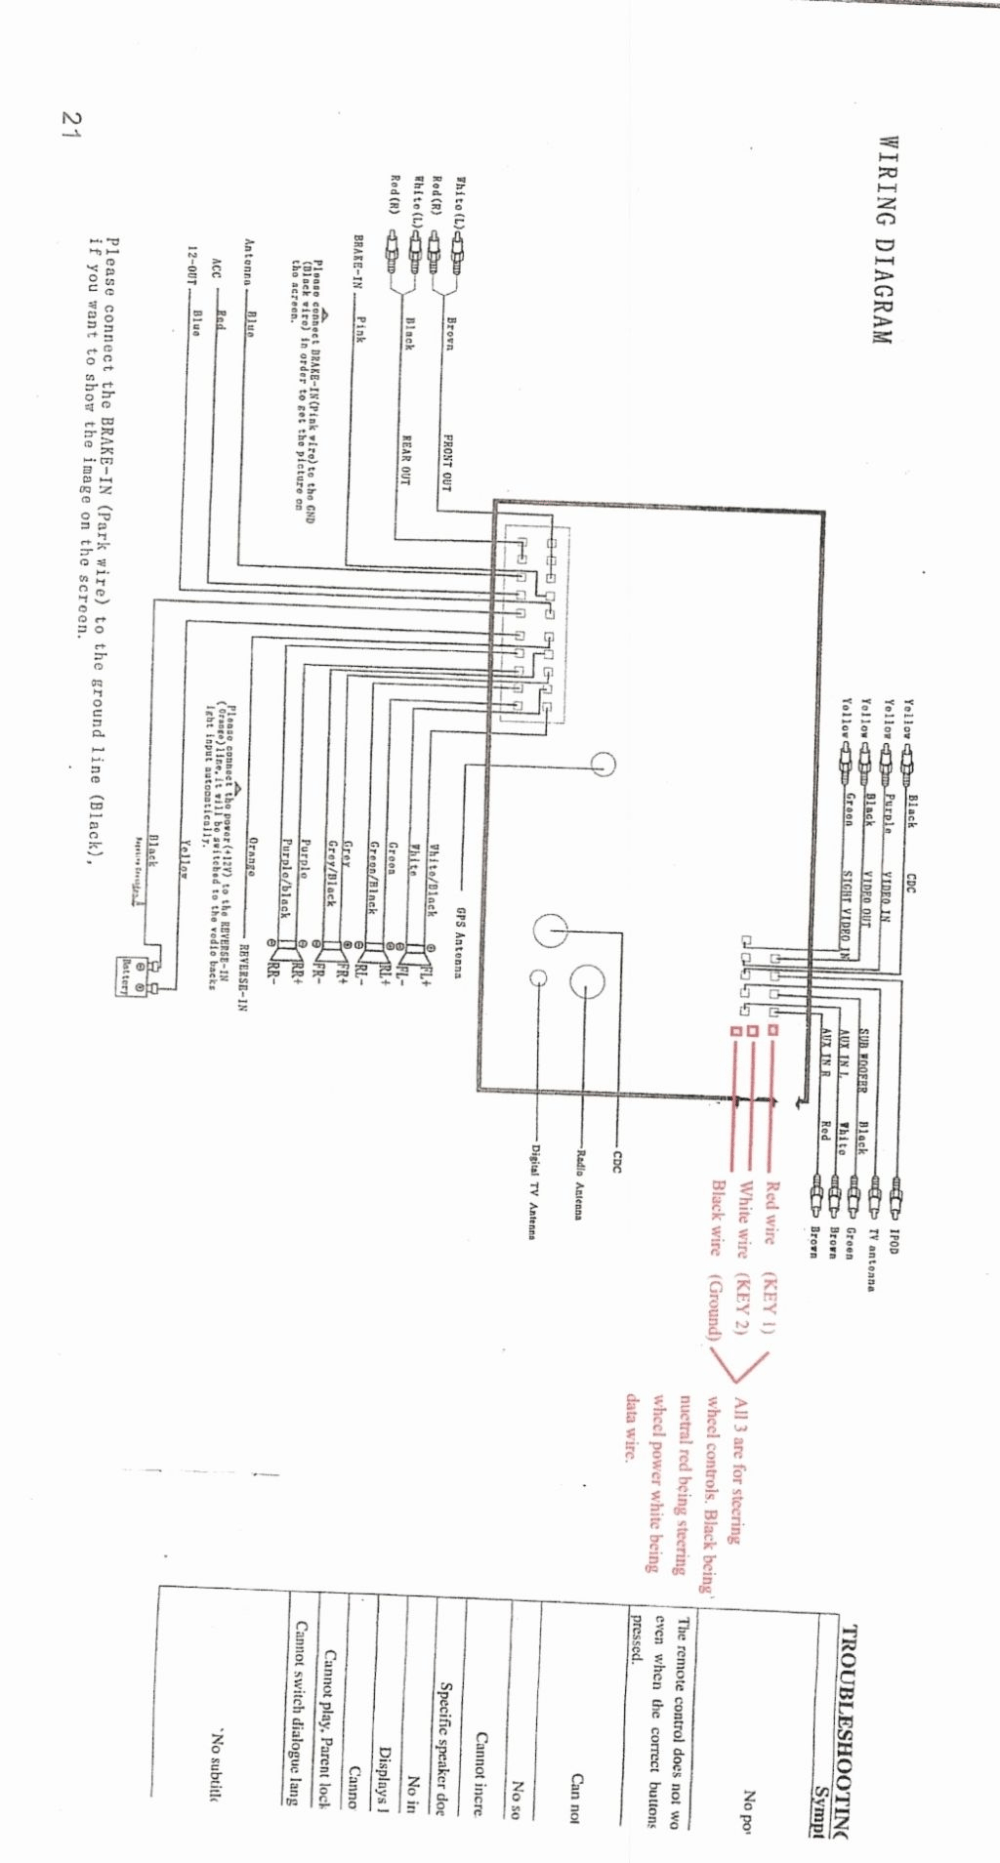 medium resolution of toyota steering wheel control wiring diagram wiring diagram steering wheel wiring harness diagram wiring diagram databasetoyota